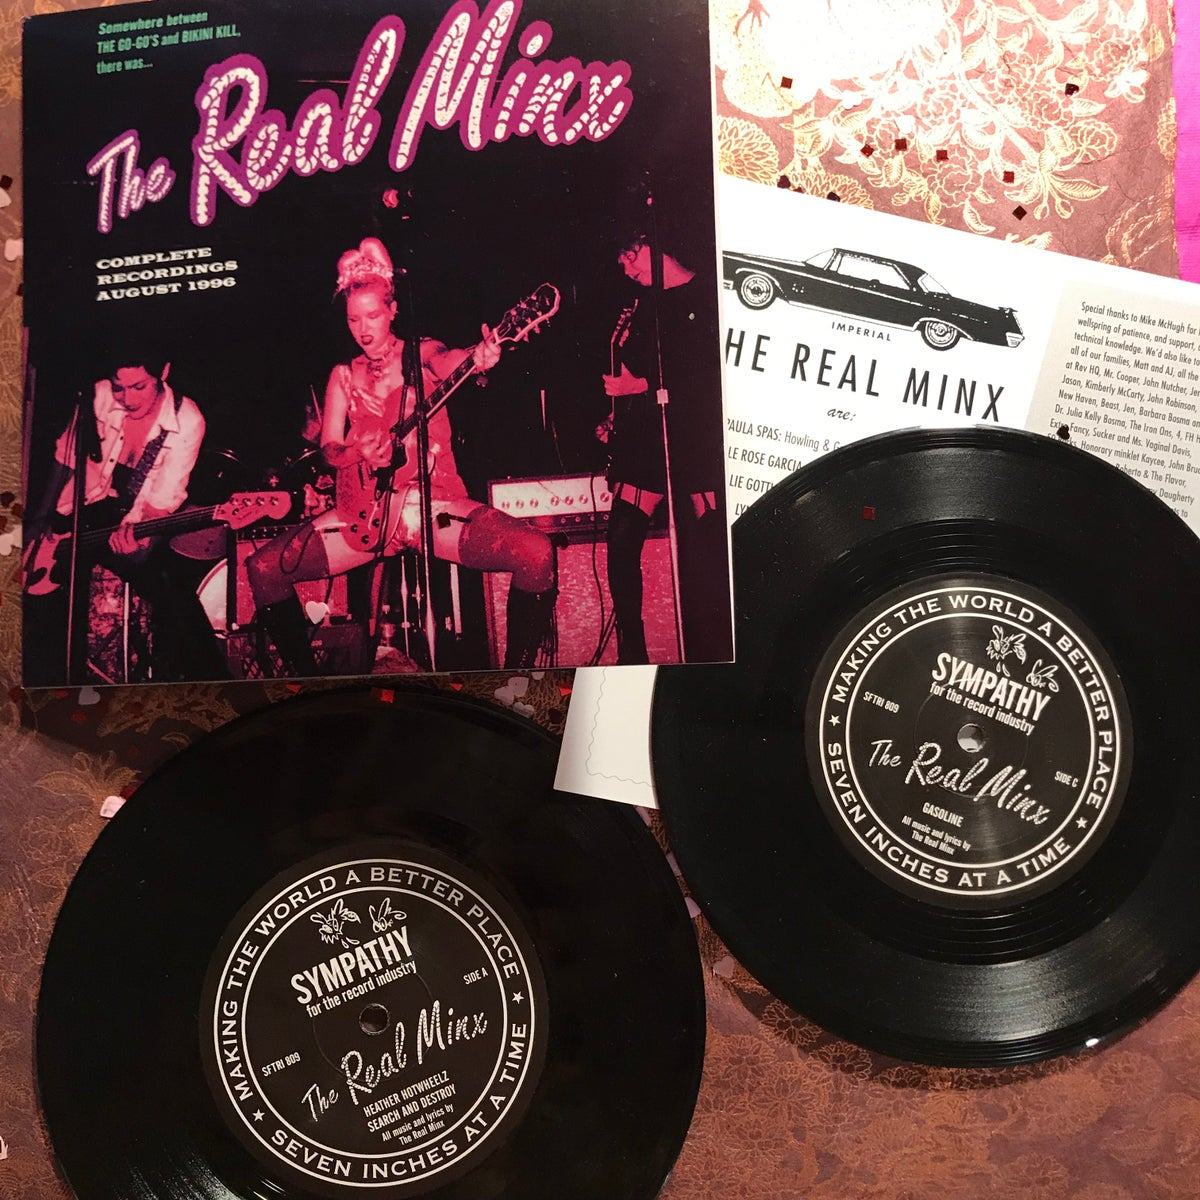 """Image of The Real Minx double gatefold 7"""" vinyl records"""